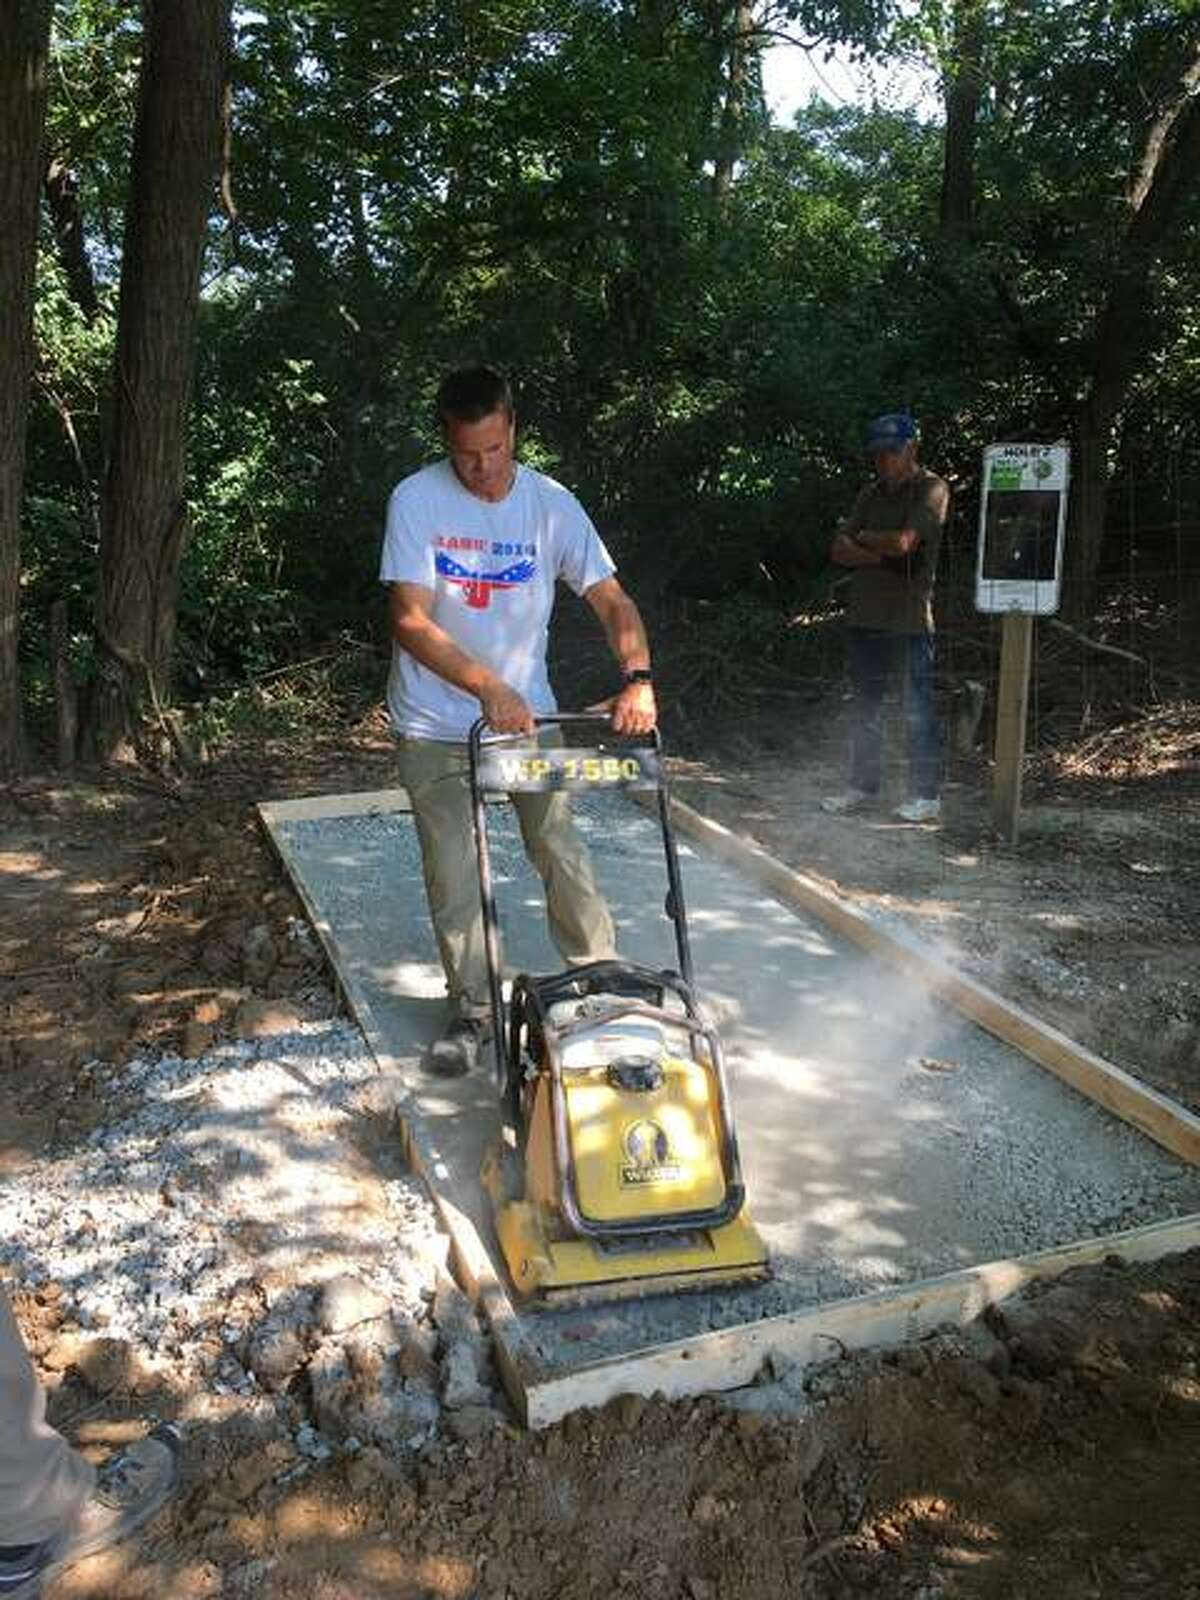 In this August 2020 photo Jason Enos, the owner of Smart Choice Auto in Godfrey, helps prepare a tee box for the La Vista Park Disc Golf Course in Godfrey. The village this week received the Governor's Hometown Award in Economic Opportunities for the project.